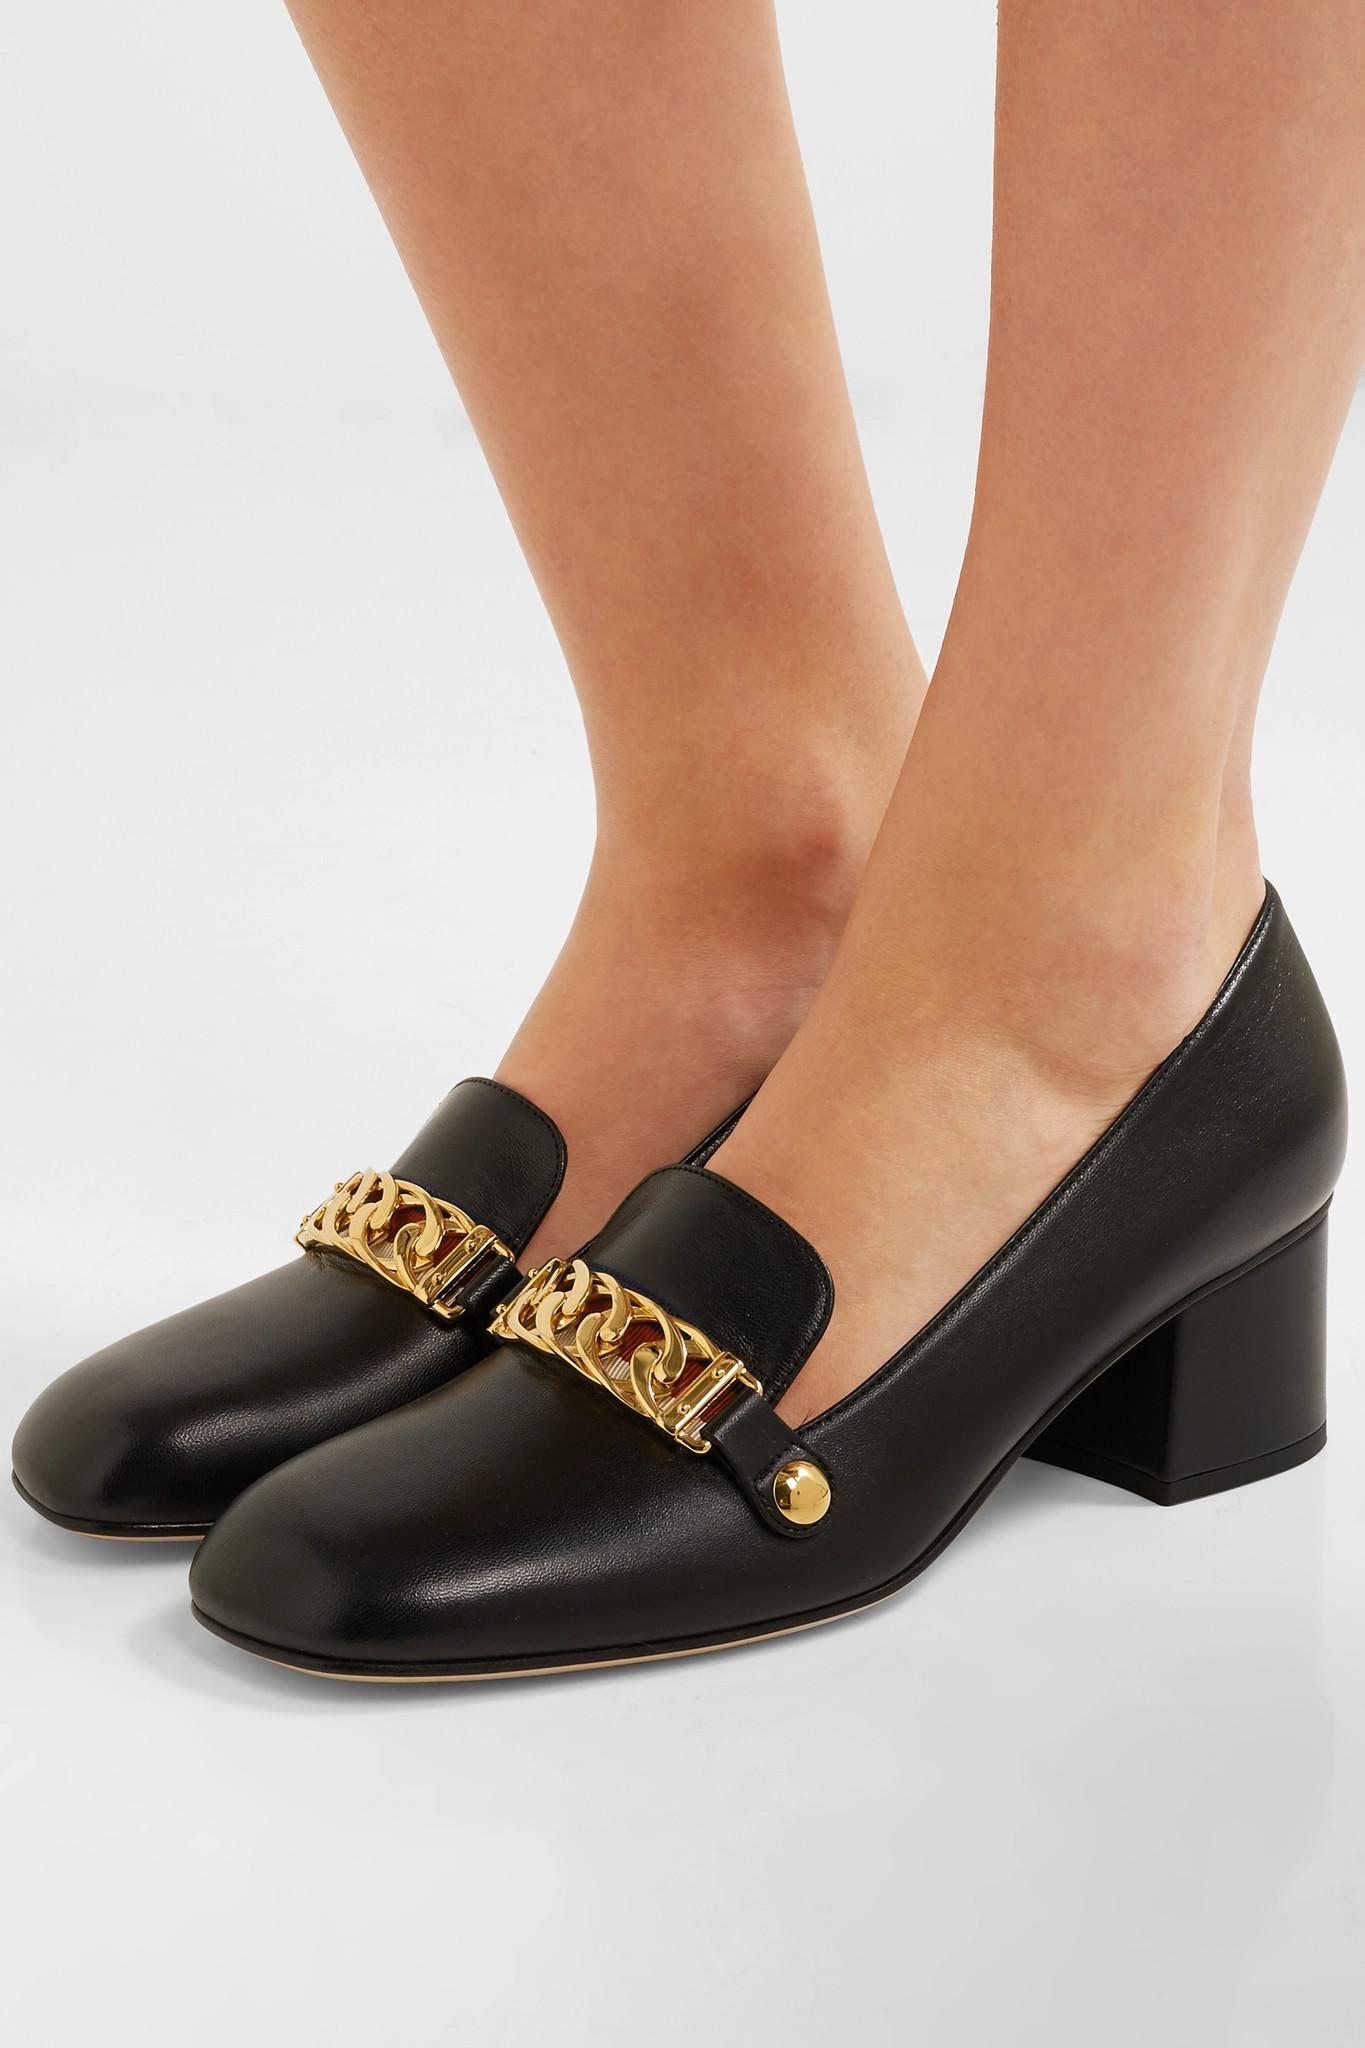 4f6ed3124f9 Gucci Sylvie Chain-embellished Leather Pumps in Black - Lyst